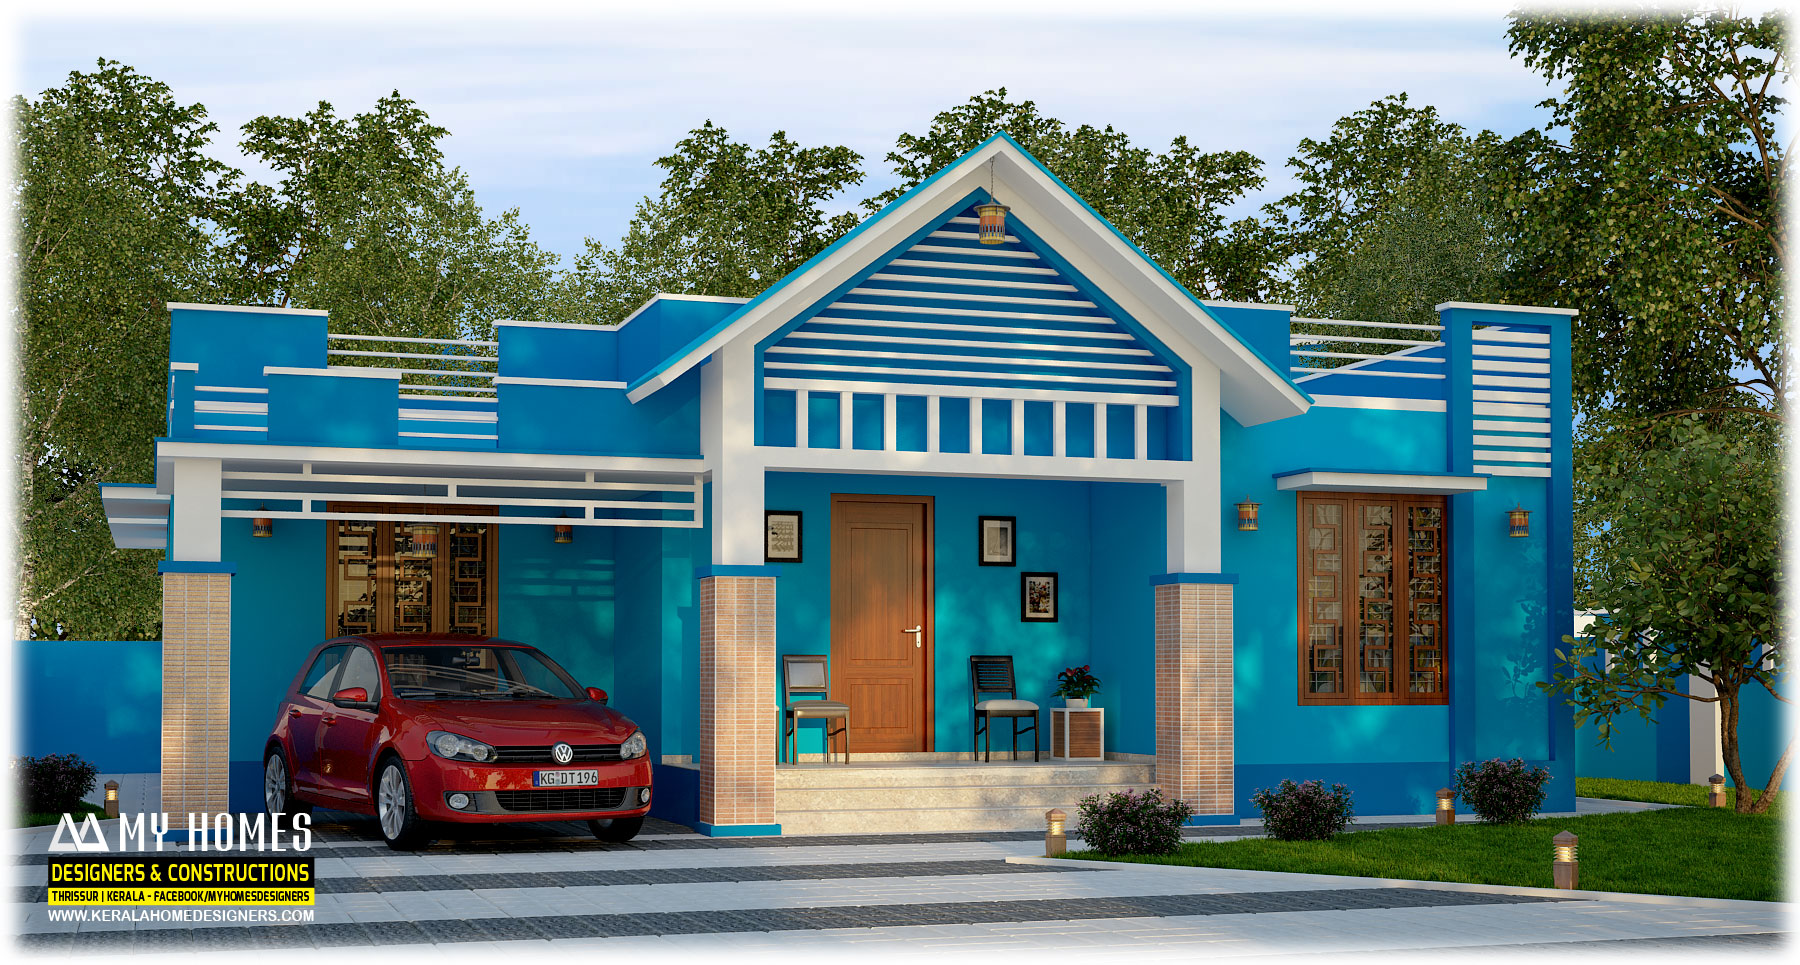 kerala homes designs and plans photos website kerala india 3 bhk 1515 sqft low cost house in kerala